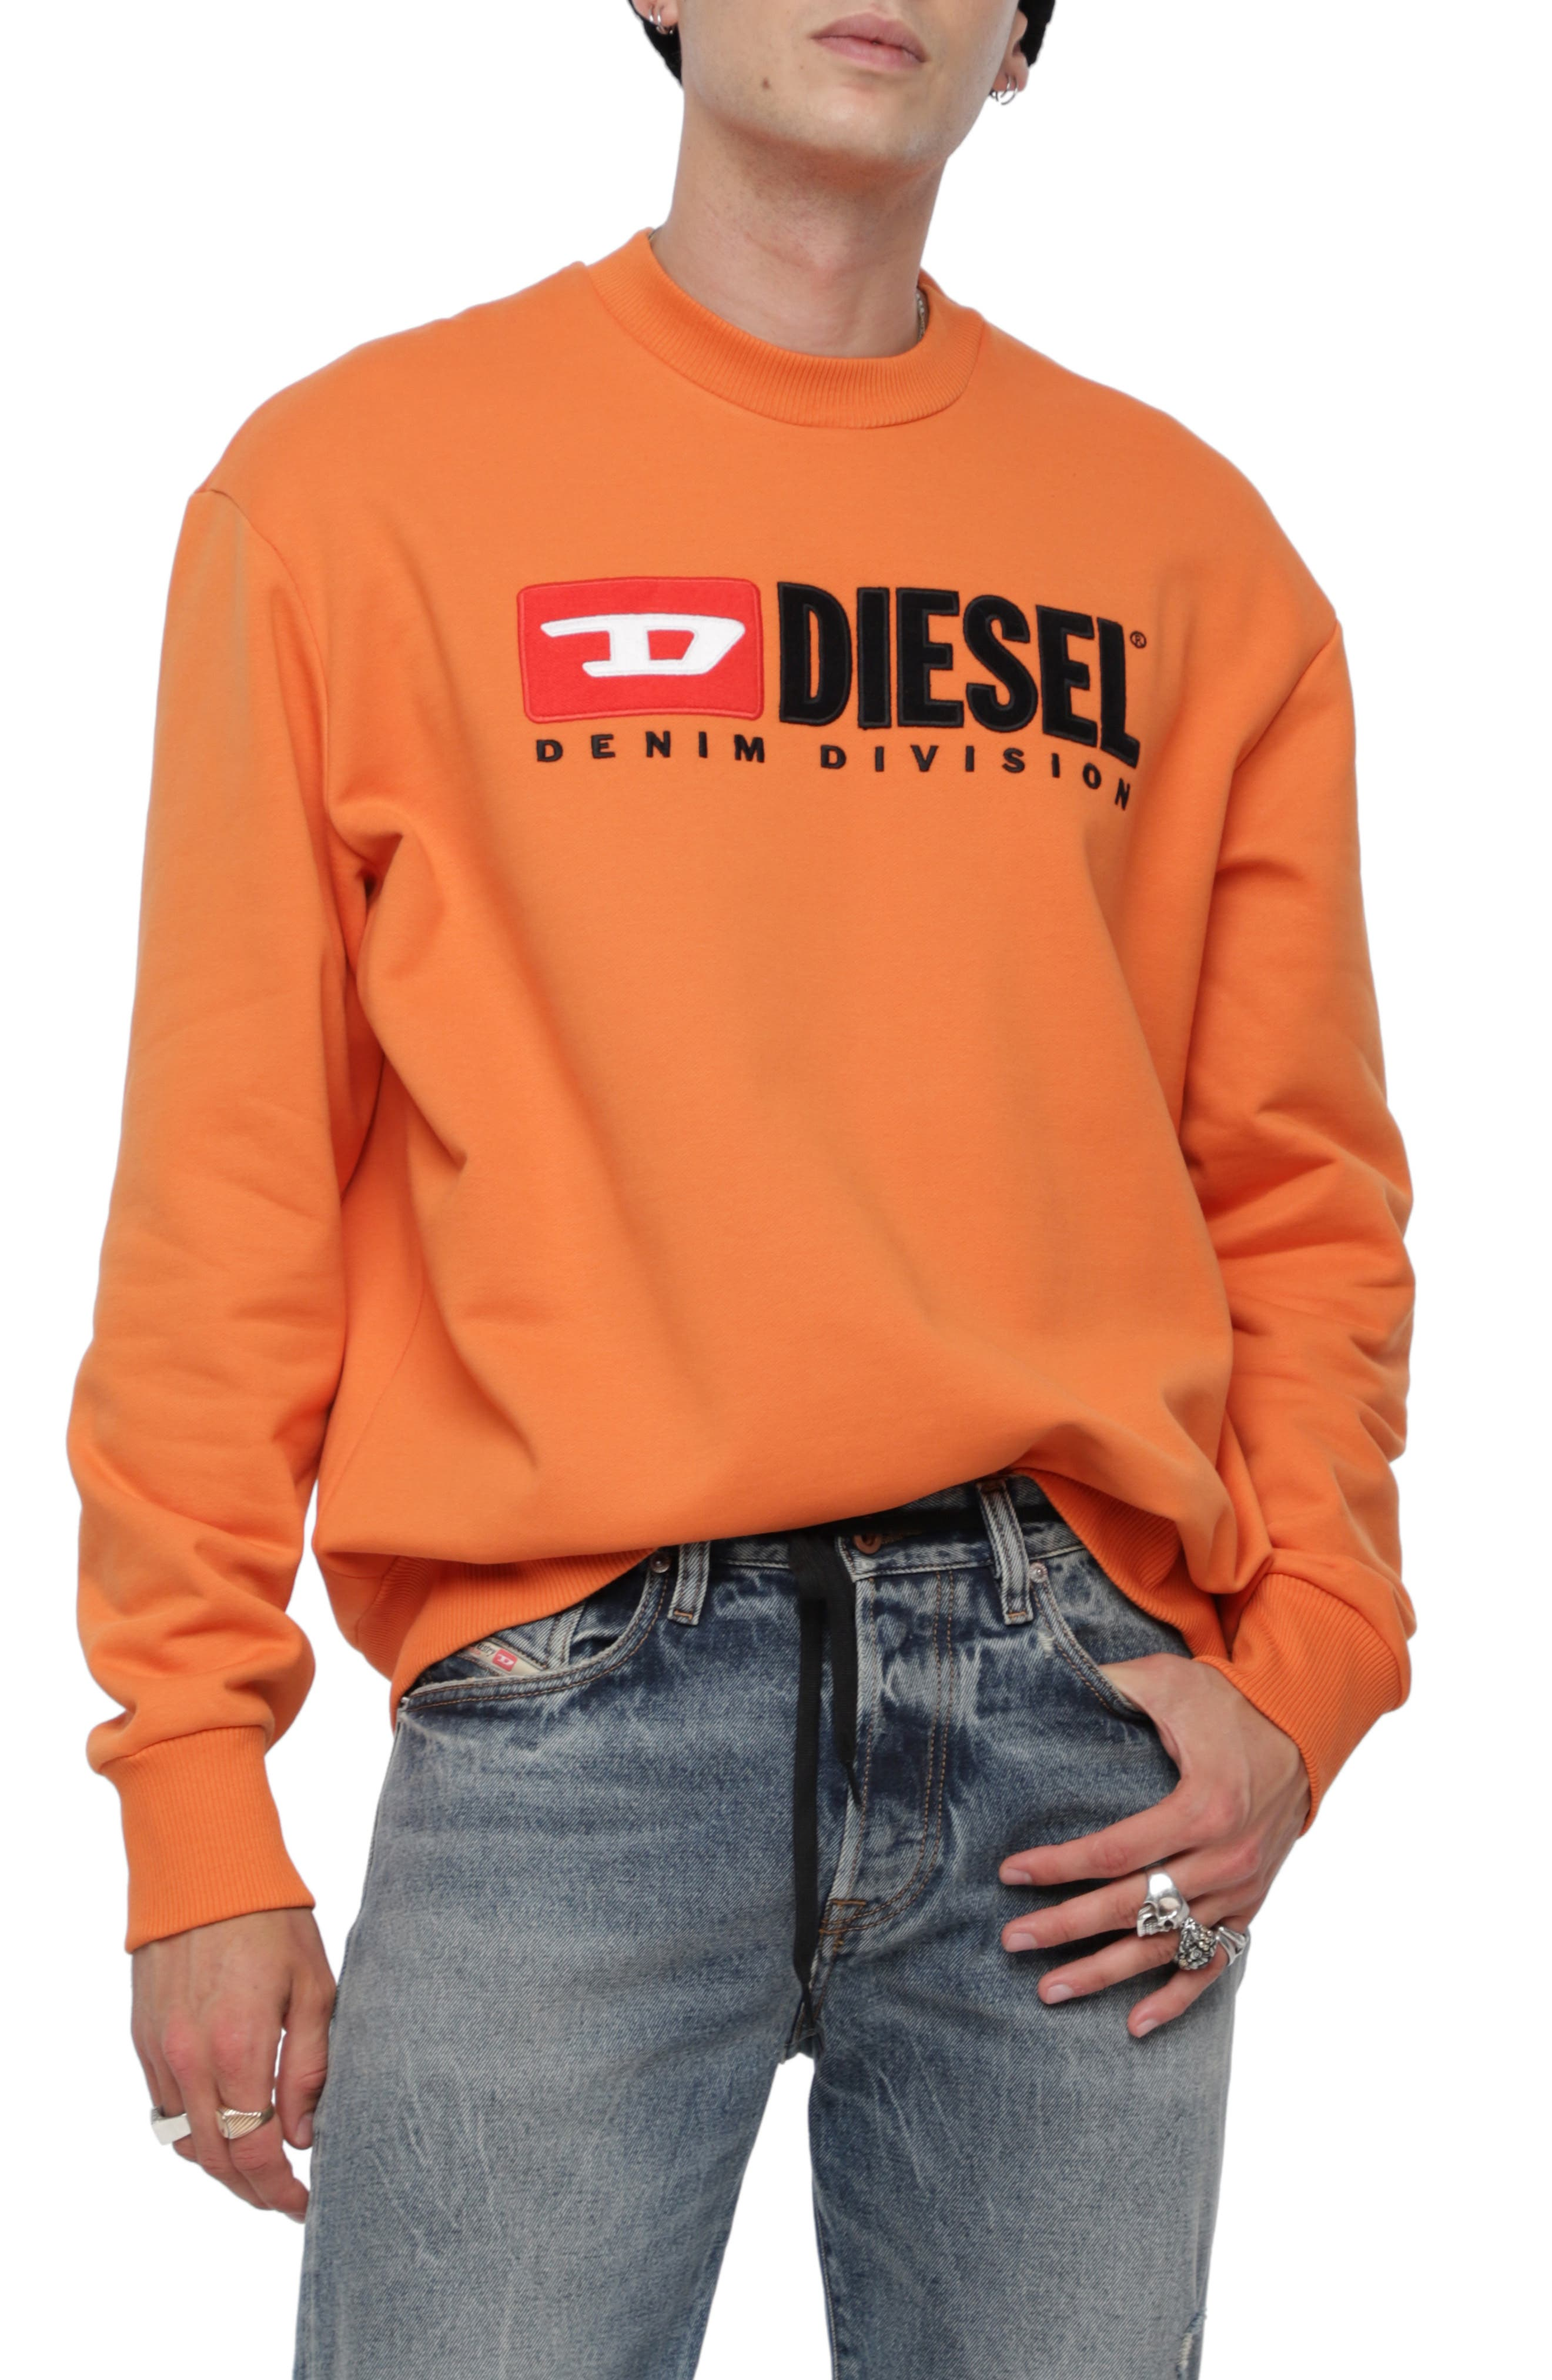 S-CREW-DIVISION Sweatshirt,                             Main thumbnail 1, color,                             ORANGE